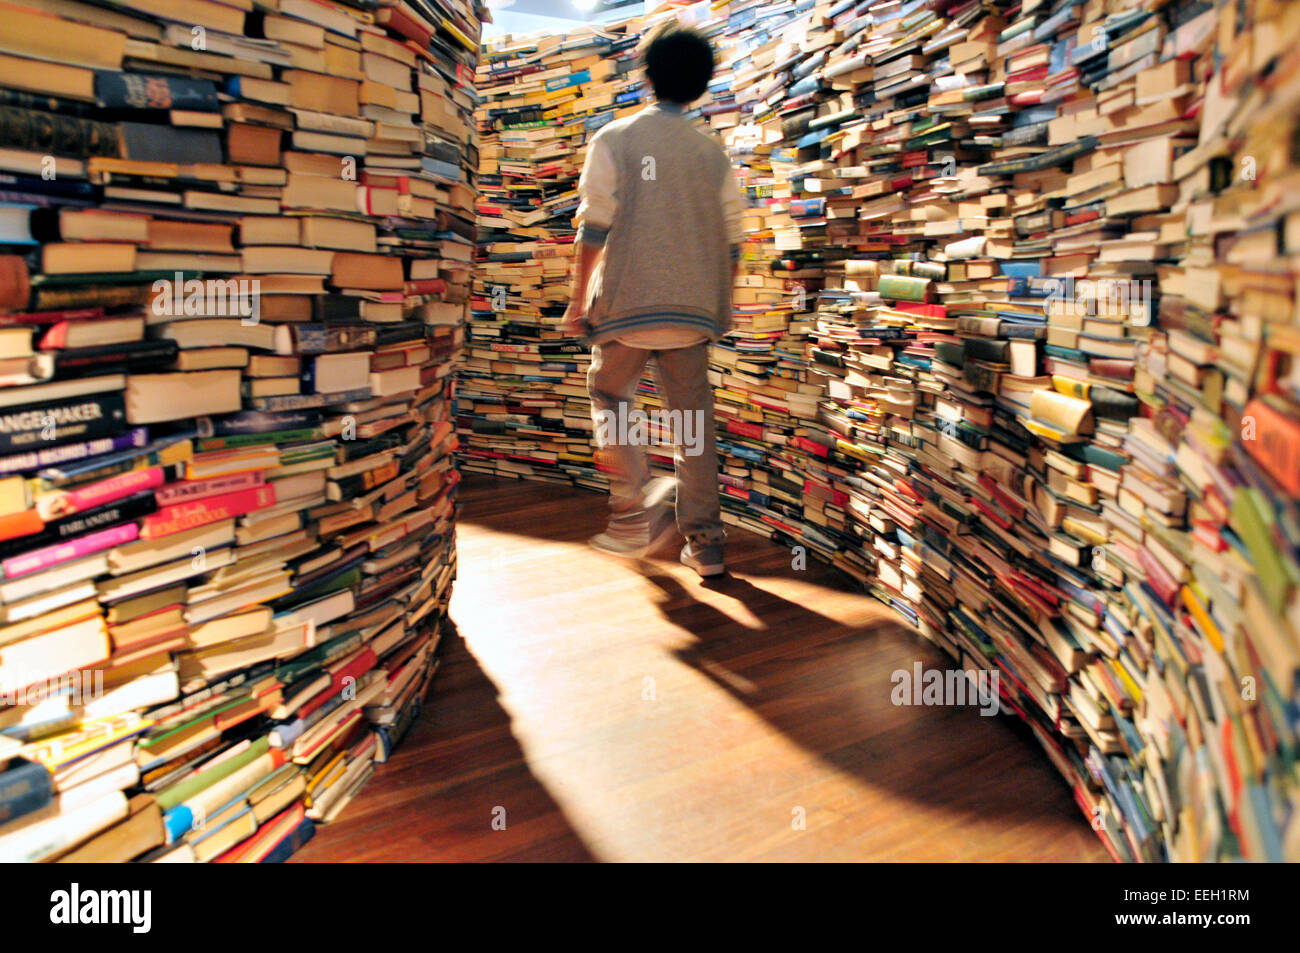 a-young-boy-walks-between-piles-of-books